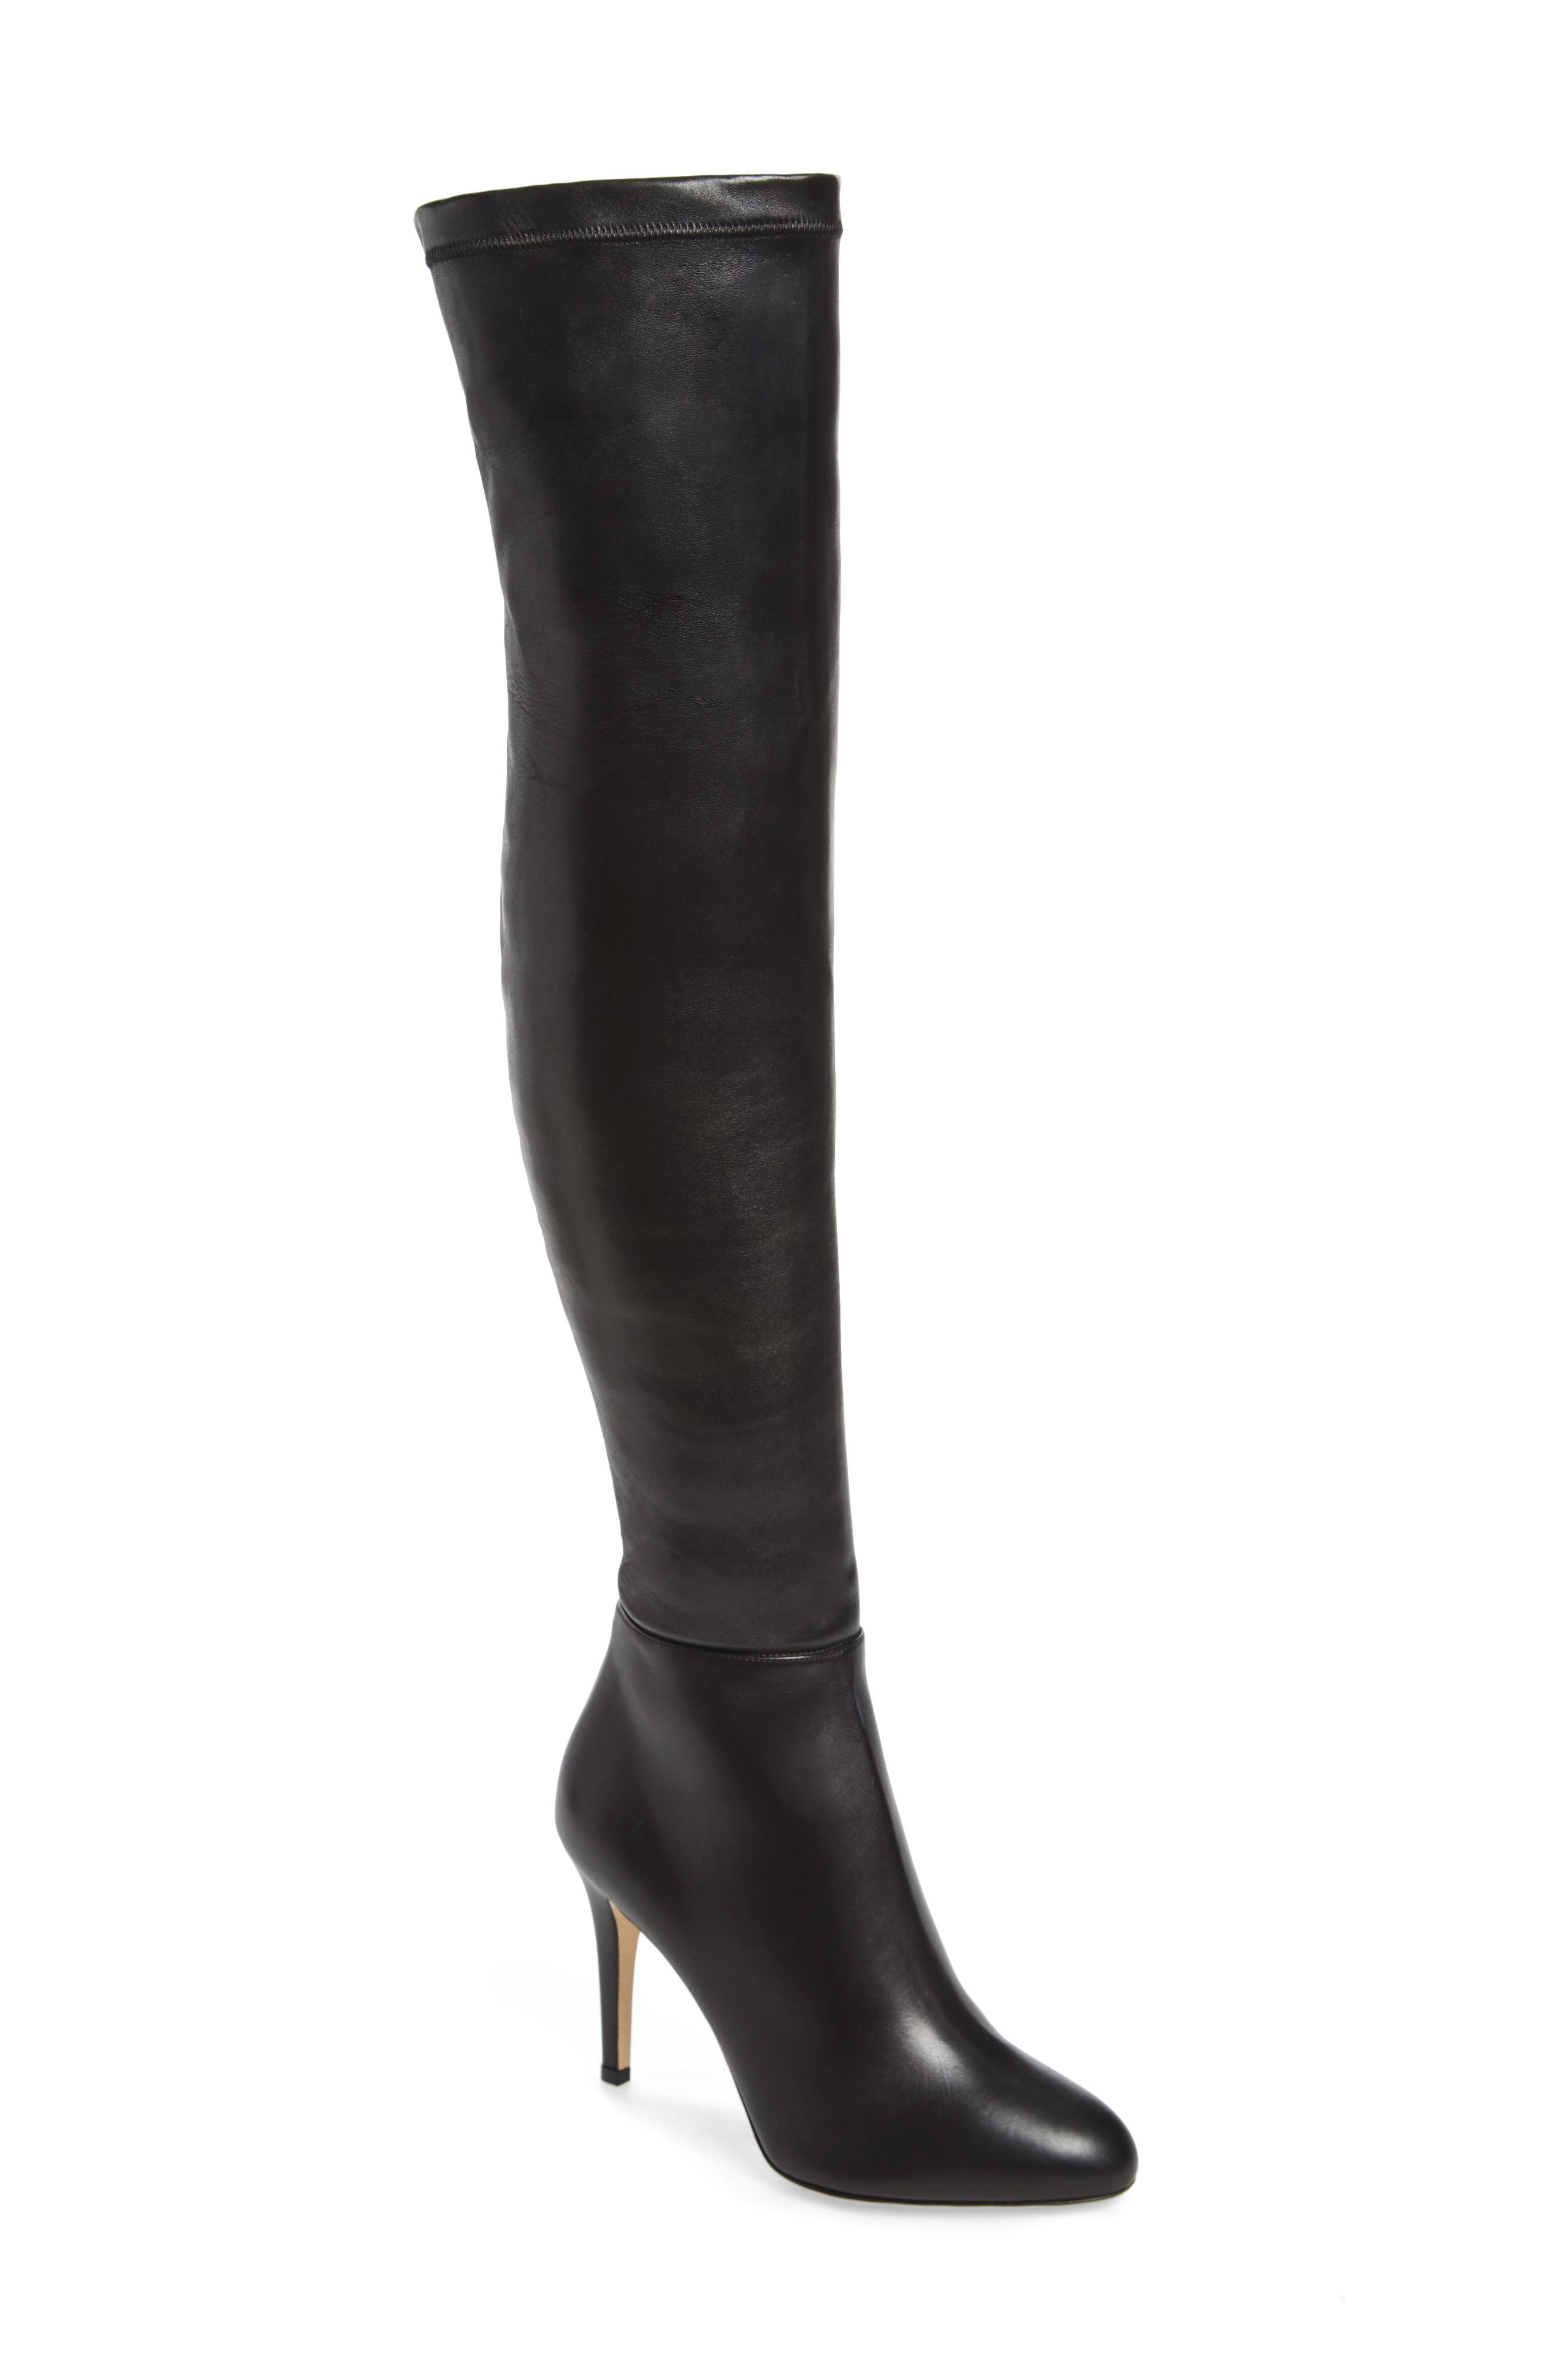 Alternate Image 1 Selected - Jimmy Choo Over-the-Knee Boot (Women)